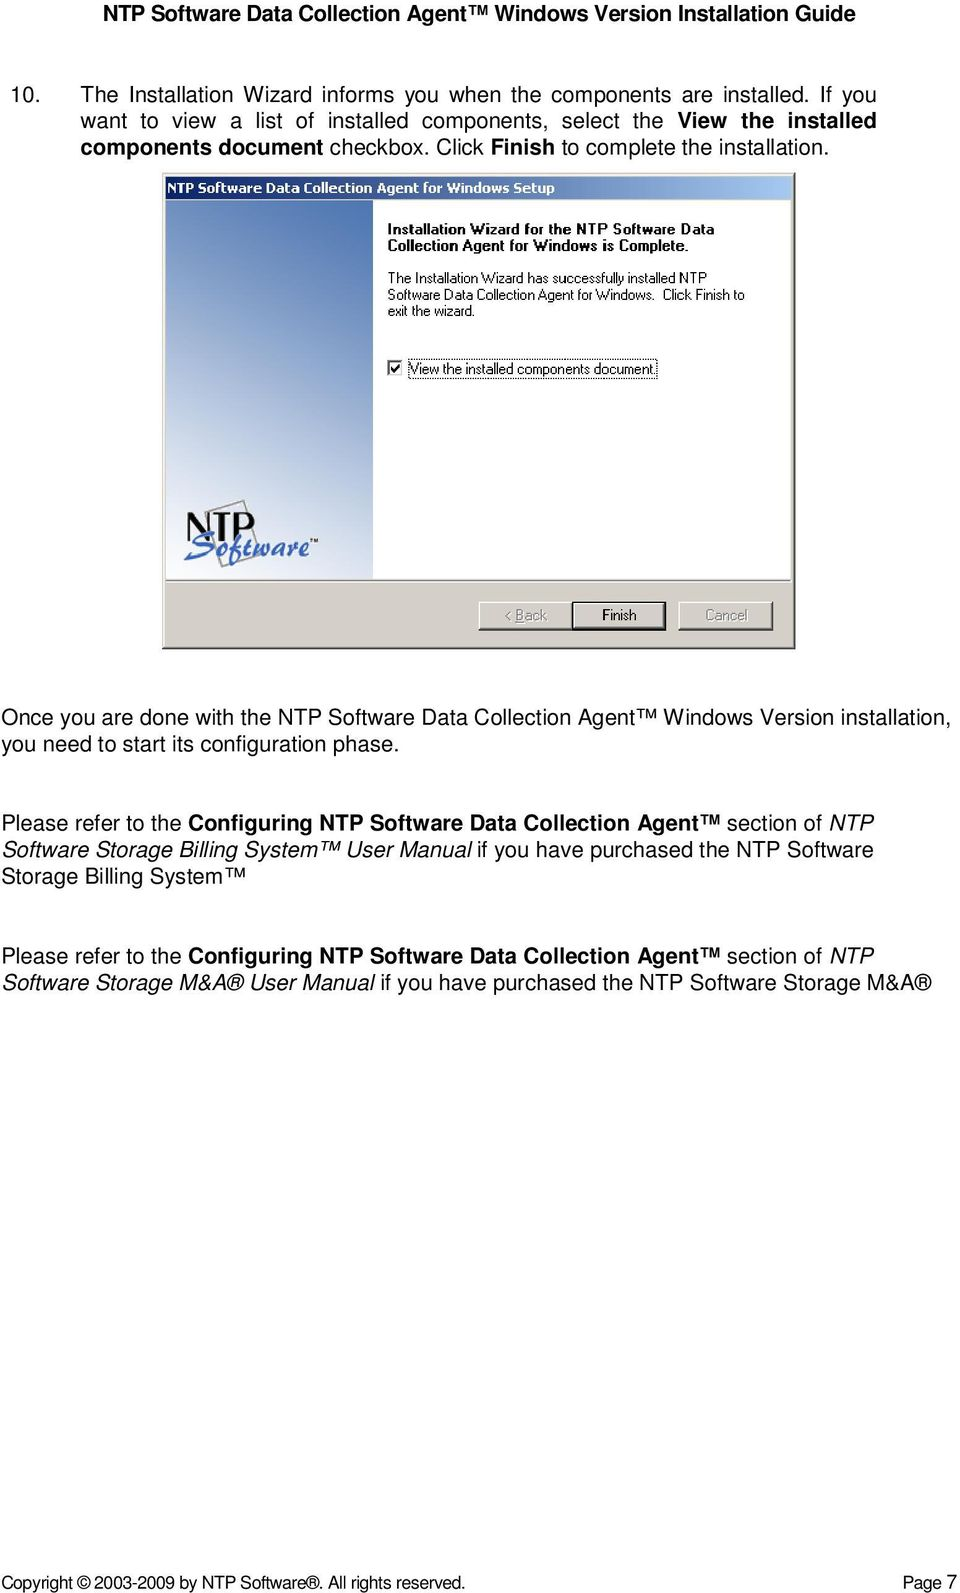 Please refer to the Configuring NTP Software Data Collection Agent section of NTP Software Storage Billing System User Manual if you have purchased the NTP Software Storage Billing System Please